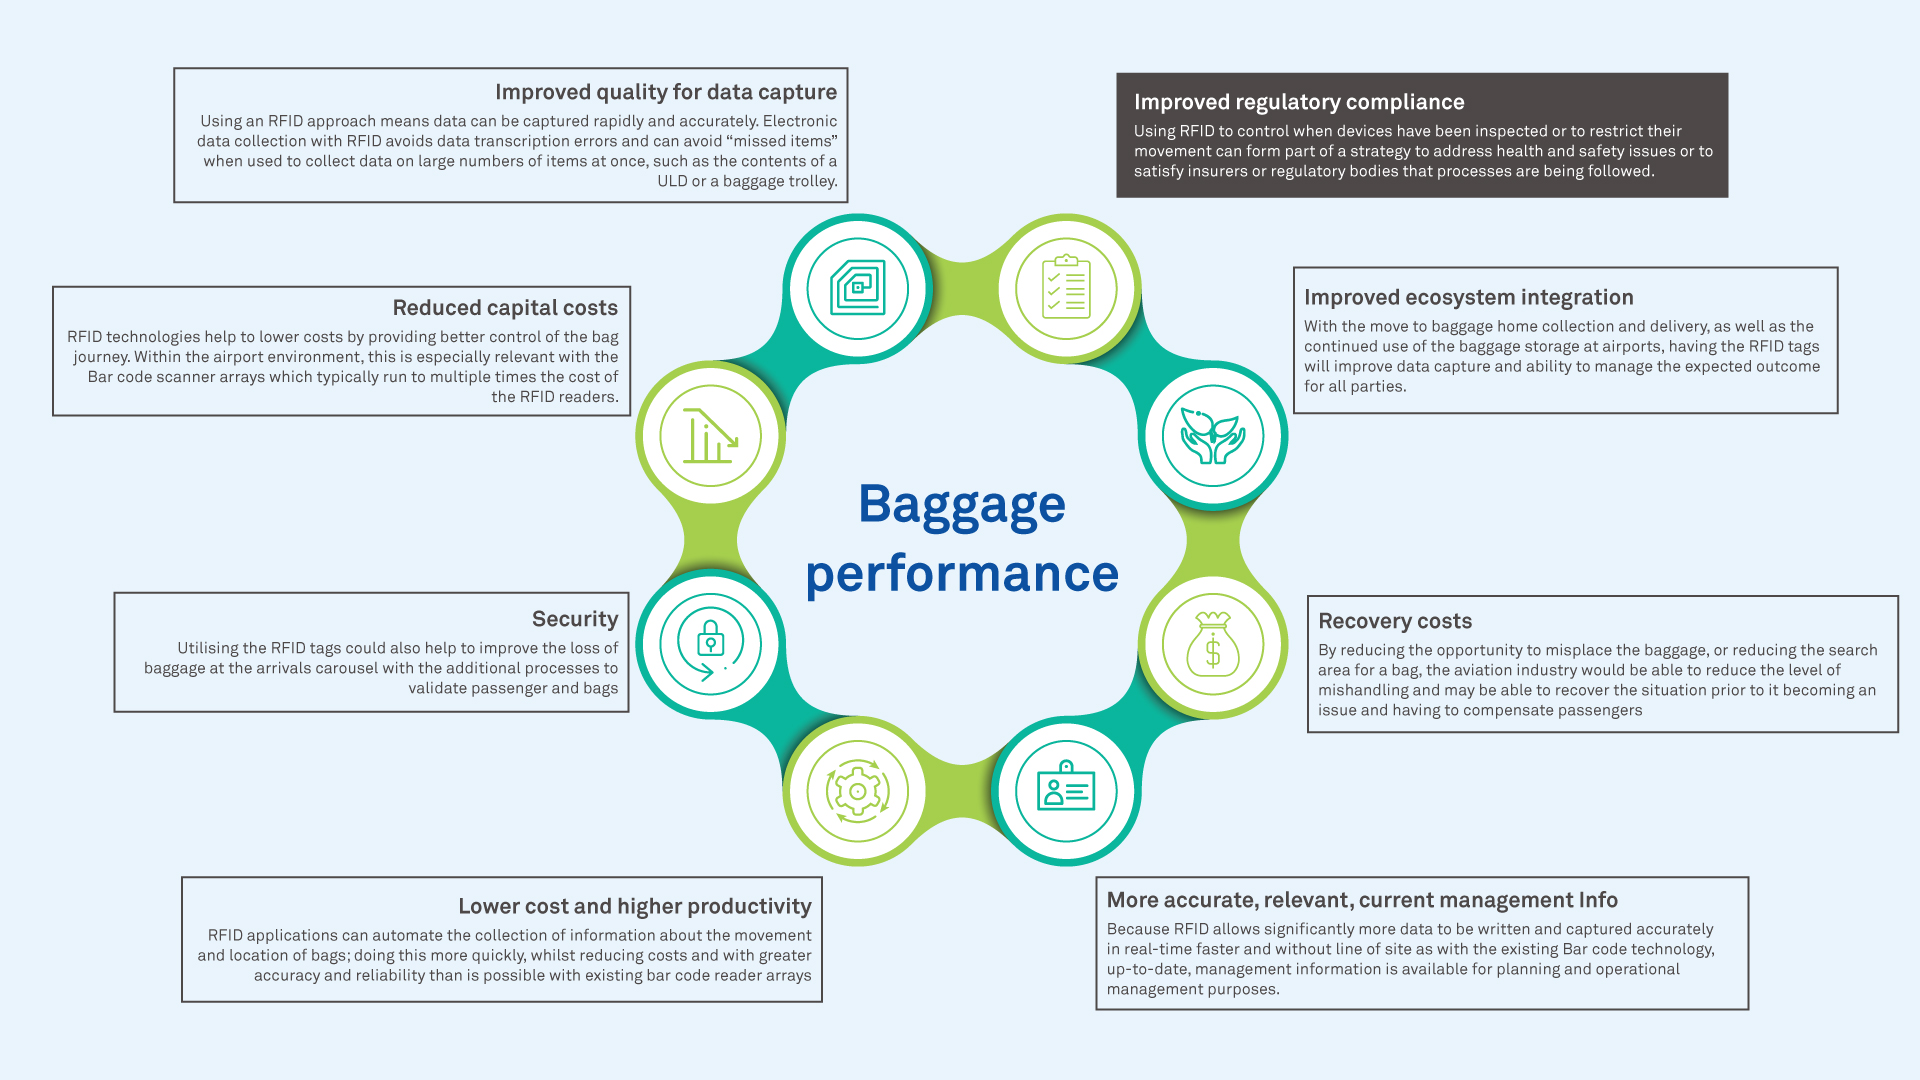 Digital Overhaul: How Airports Can Navigate New Baggage-Tracking Regulations with Ease